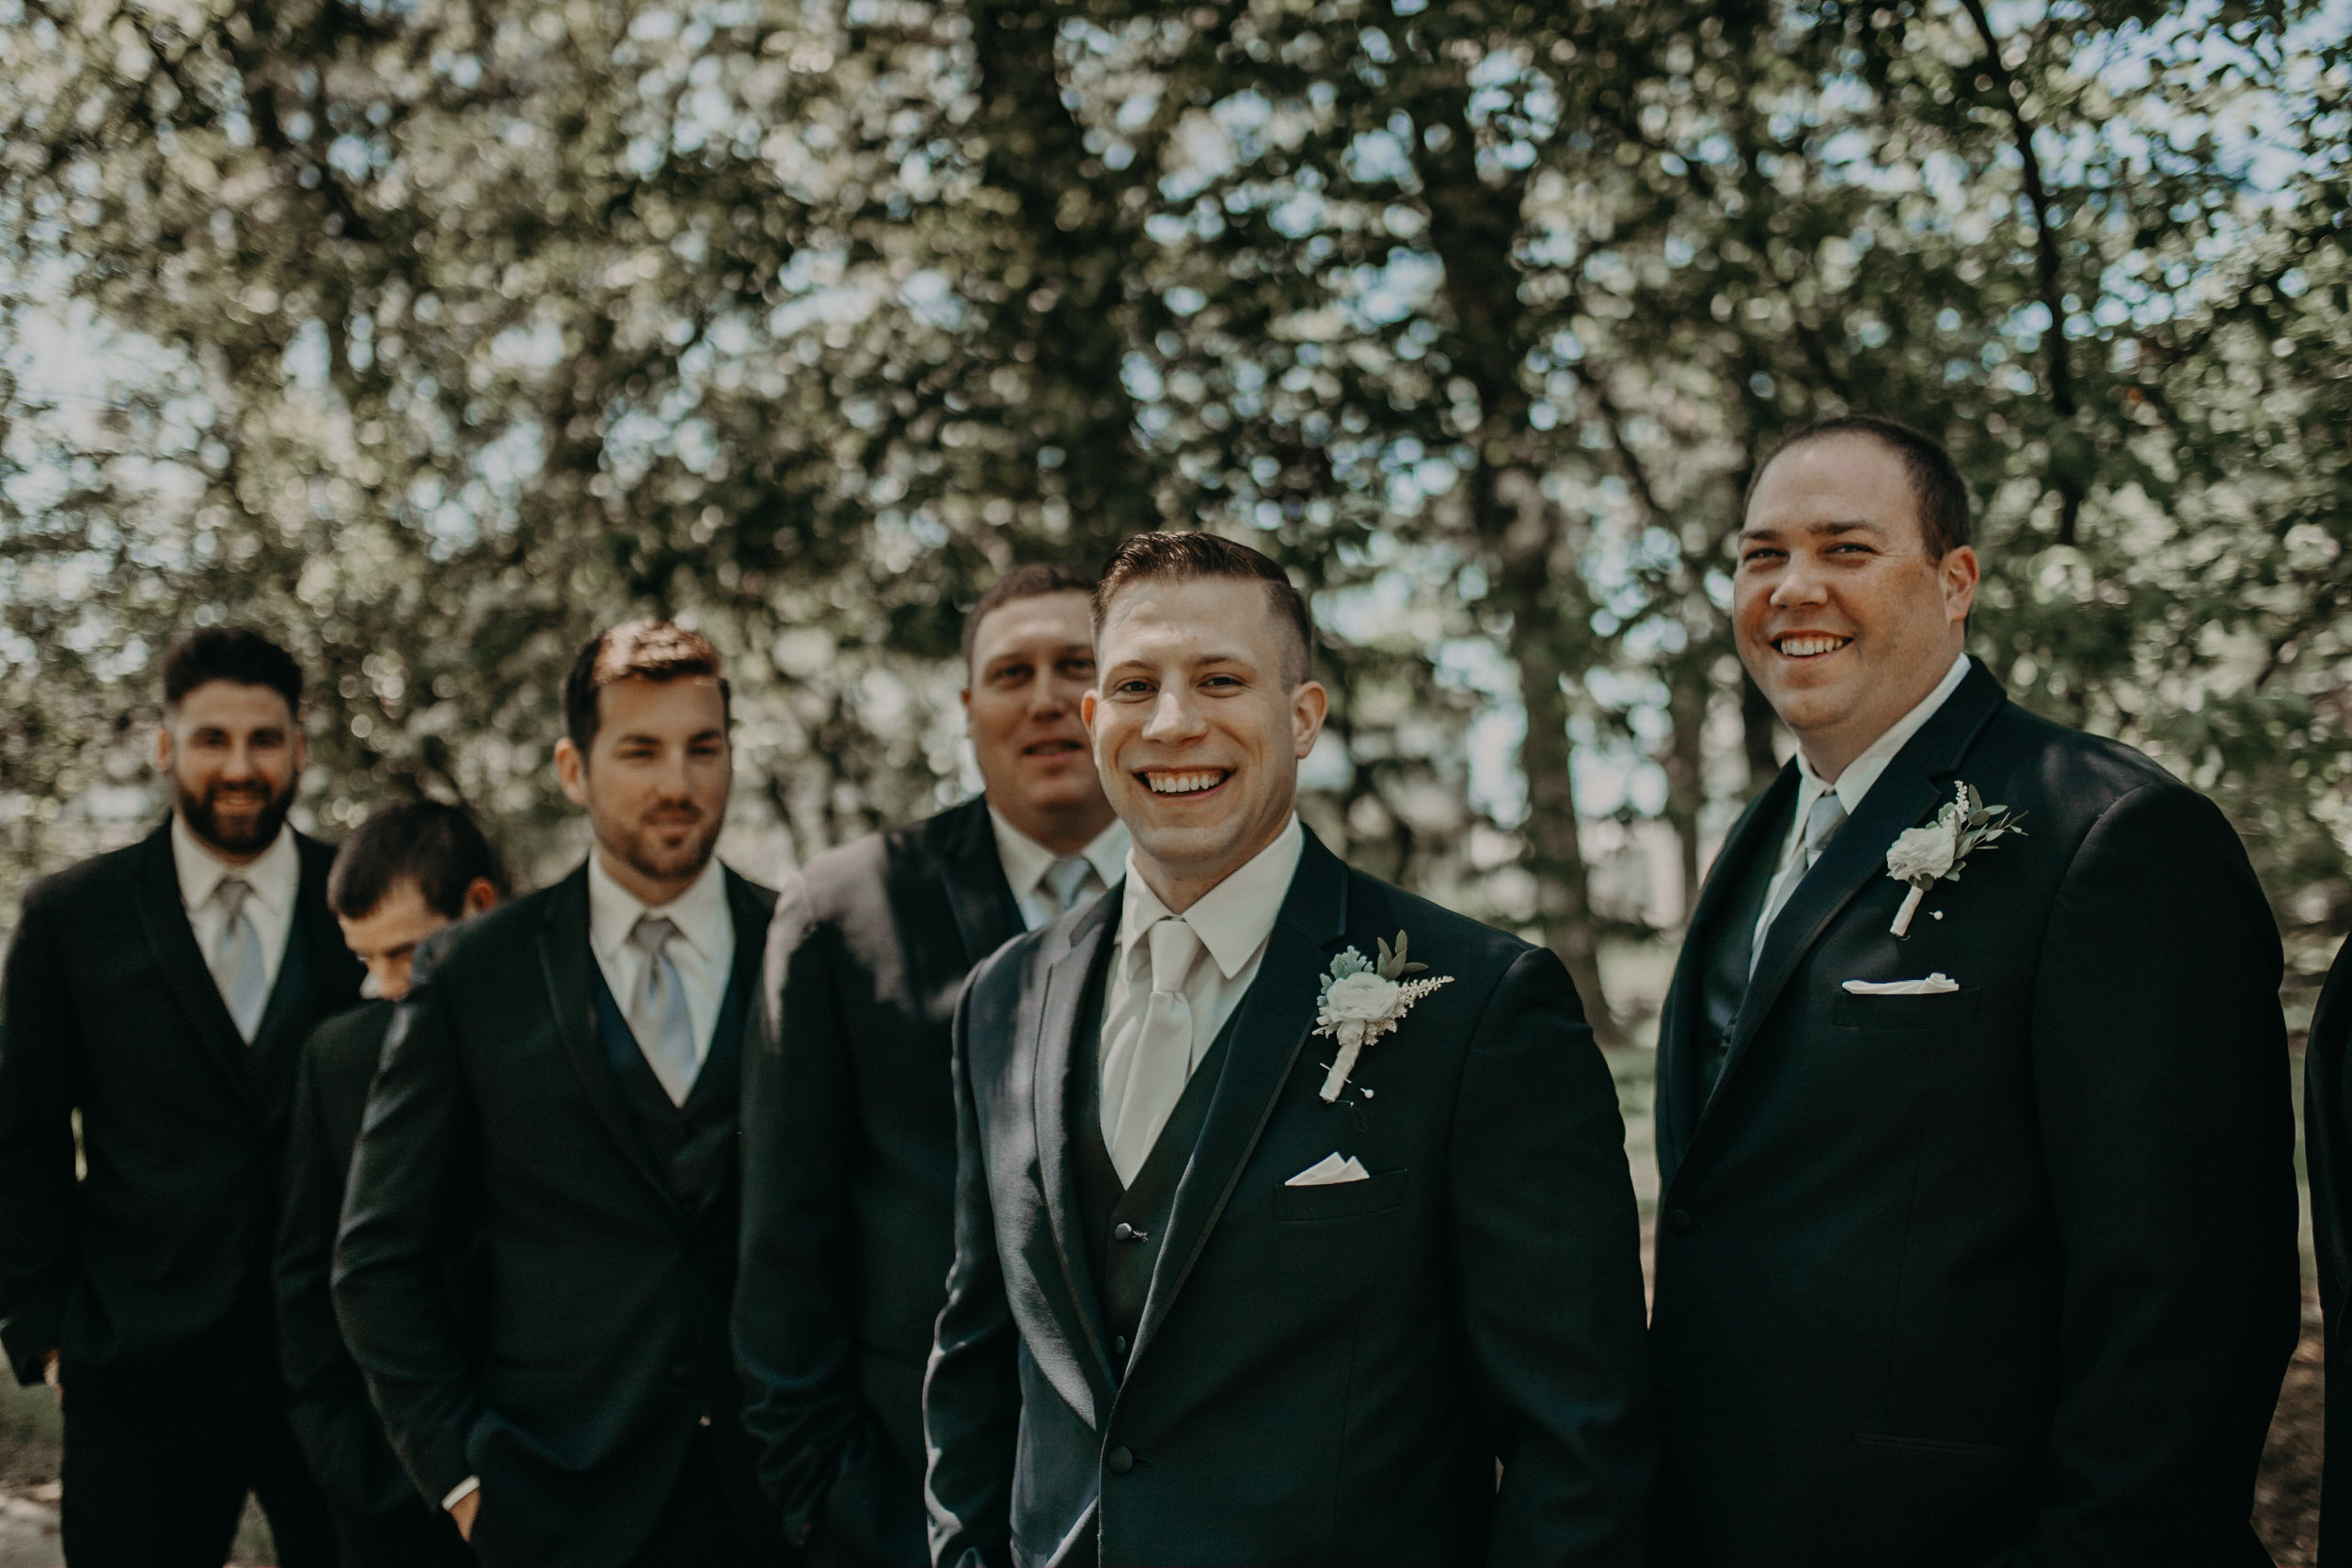 groom and his boys smile for group photos during his wedding at St Johns in Marshfield WI